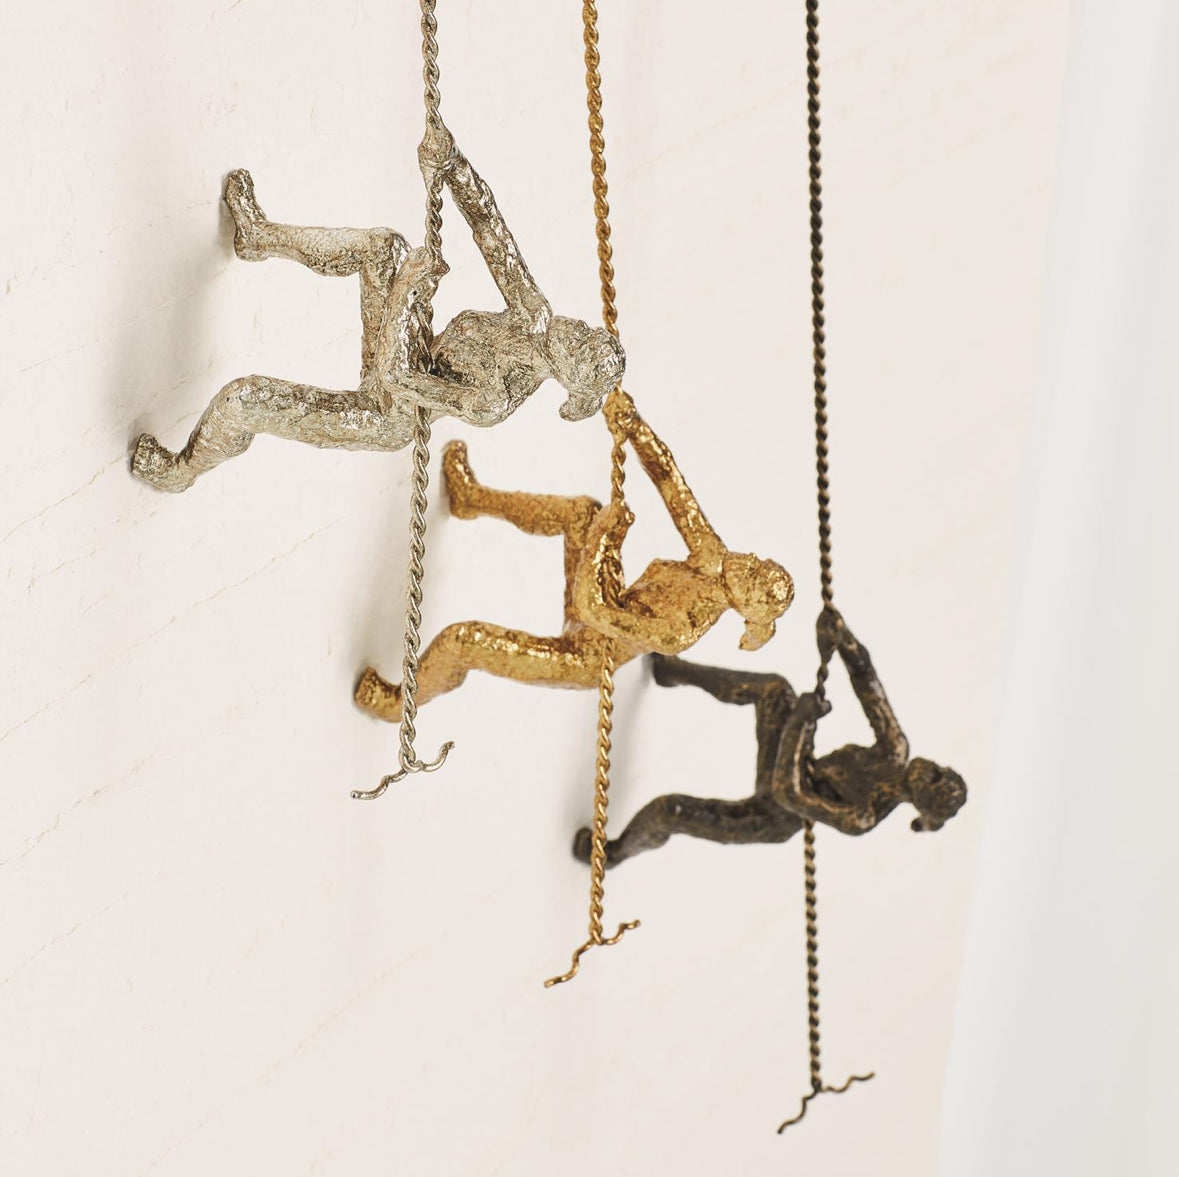 Climbing Woman-Gold, Silver & Bronze